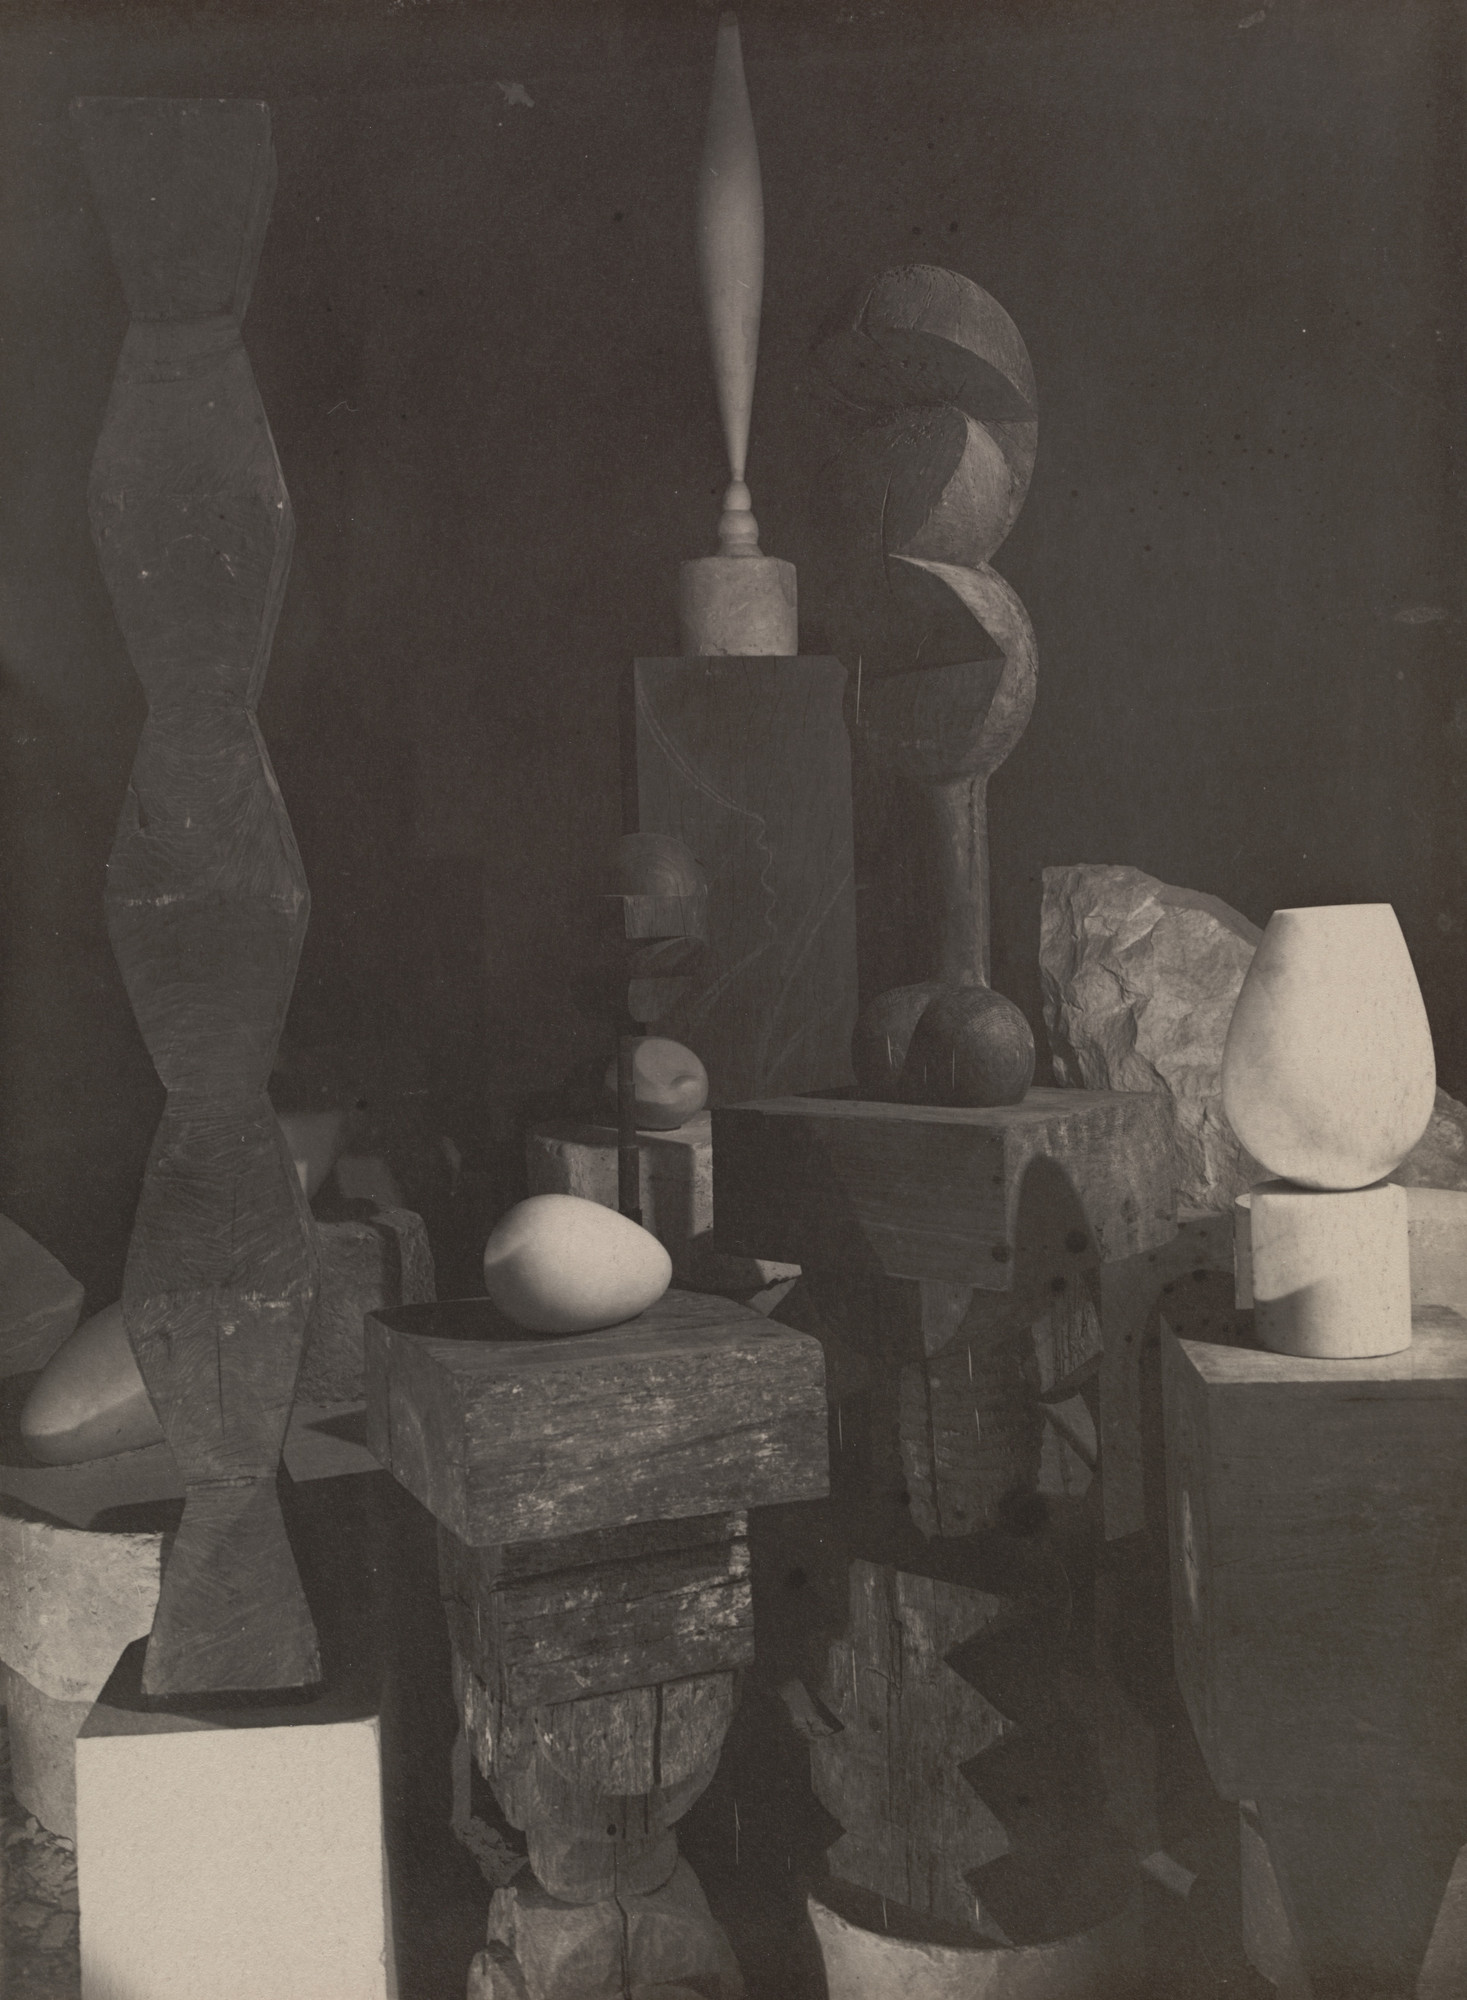 Constantin Brancusi. Untitled (View of the Studio with Endless Column, Beginning of the World, Adam and Eve, Bird in Space, and Torso of a Young Girl). 1922